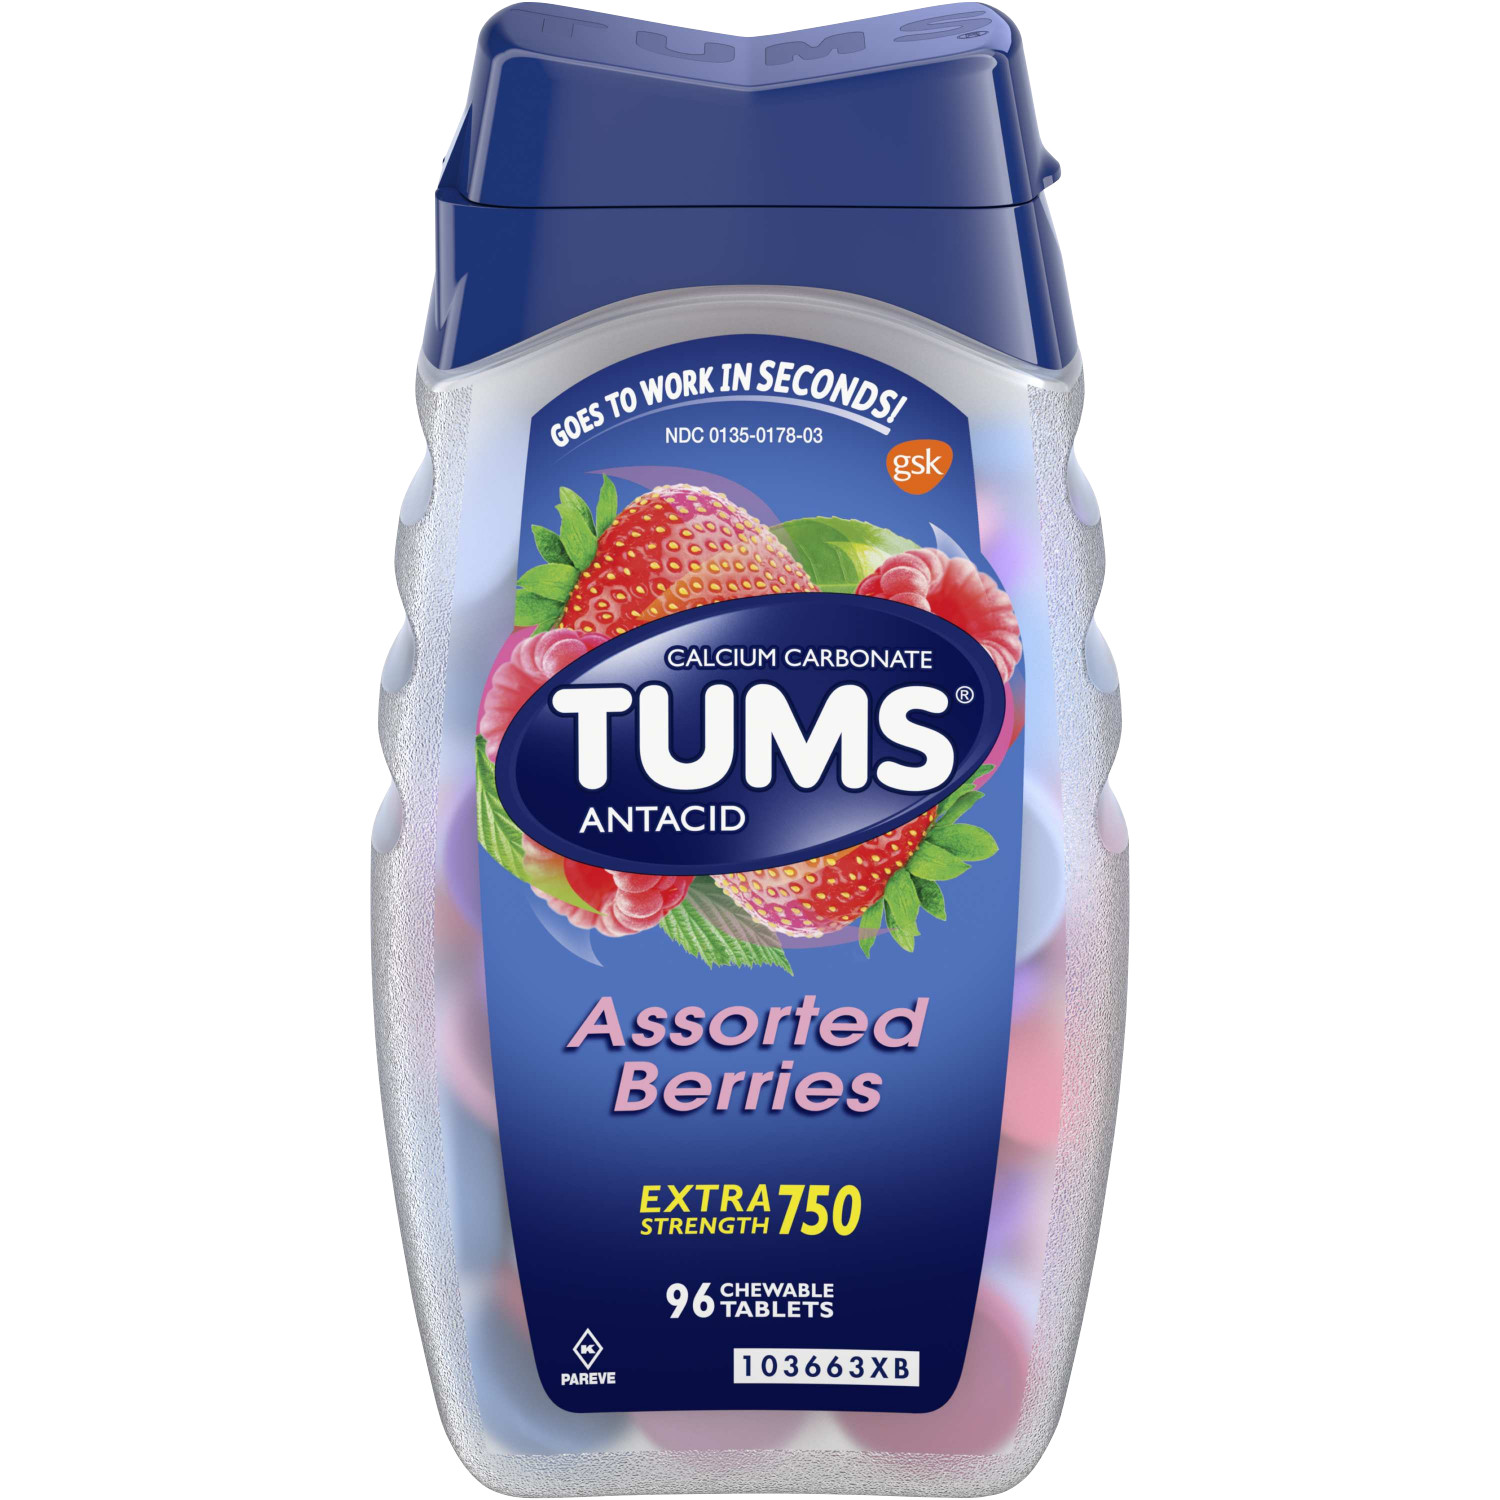 TUMS Antacid Chewable Tablets for Heartburn Relief, Extra Strength, Assorted Berries, 96 Tablets